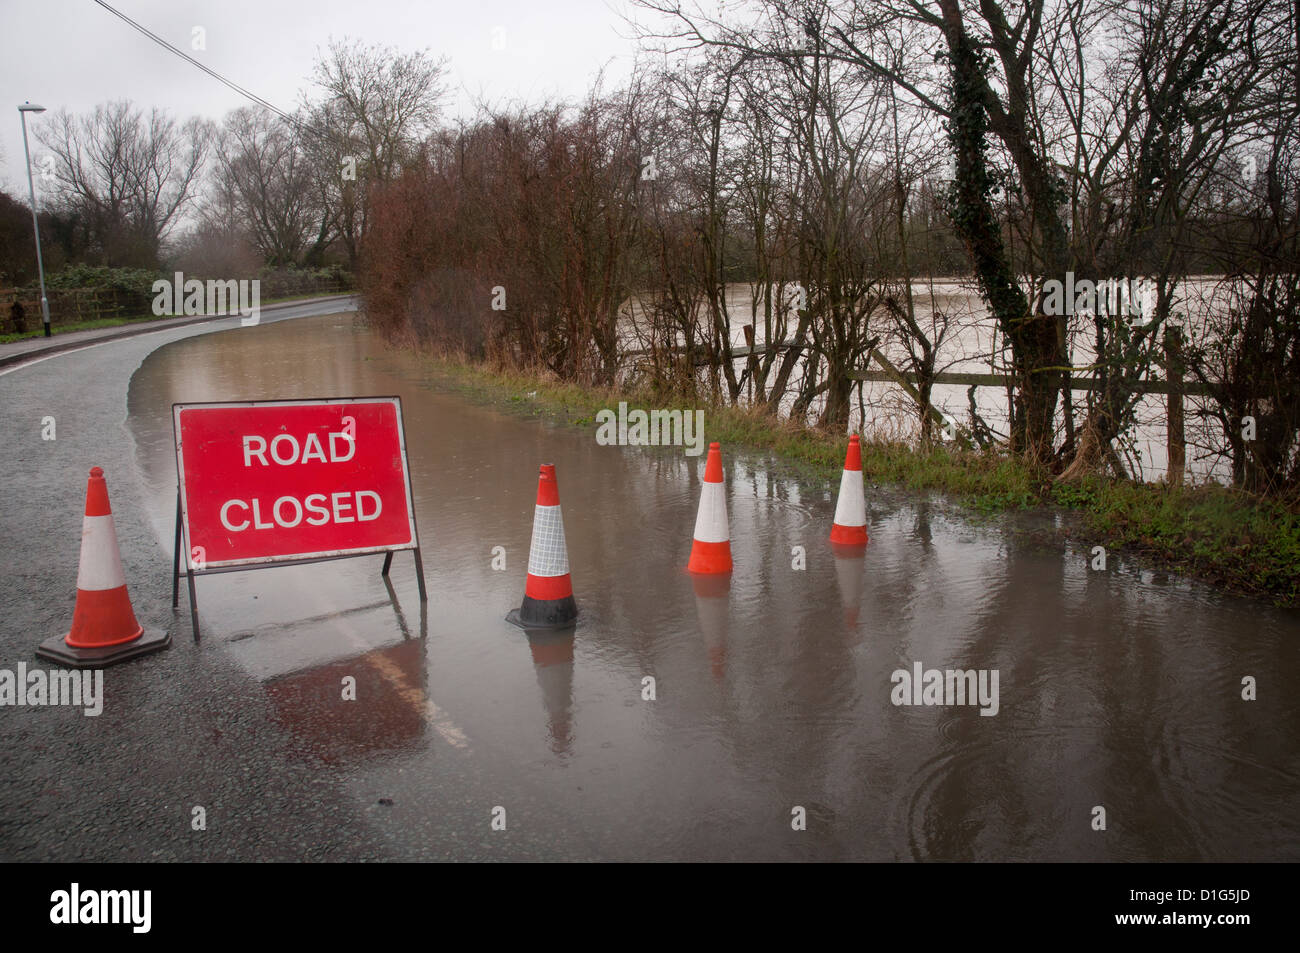 Flooded Road - Stock Image